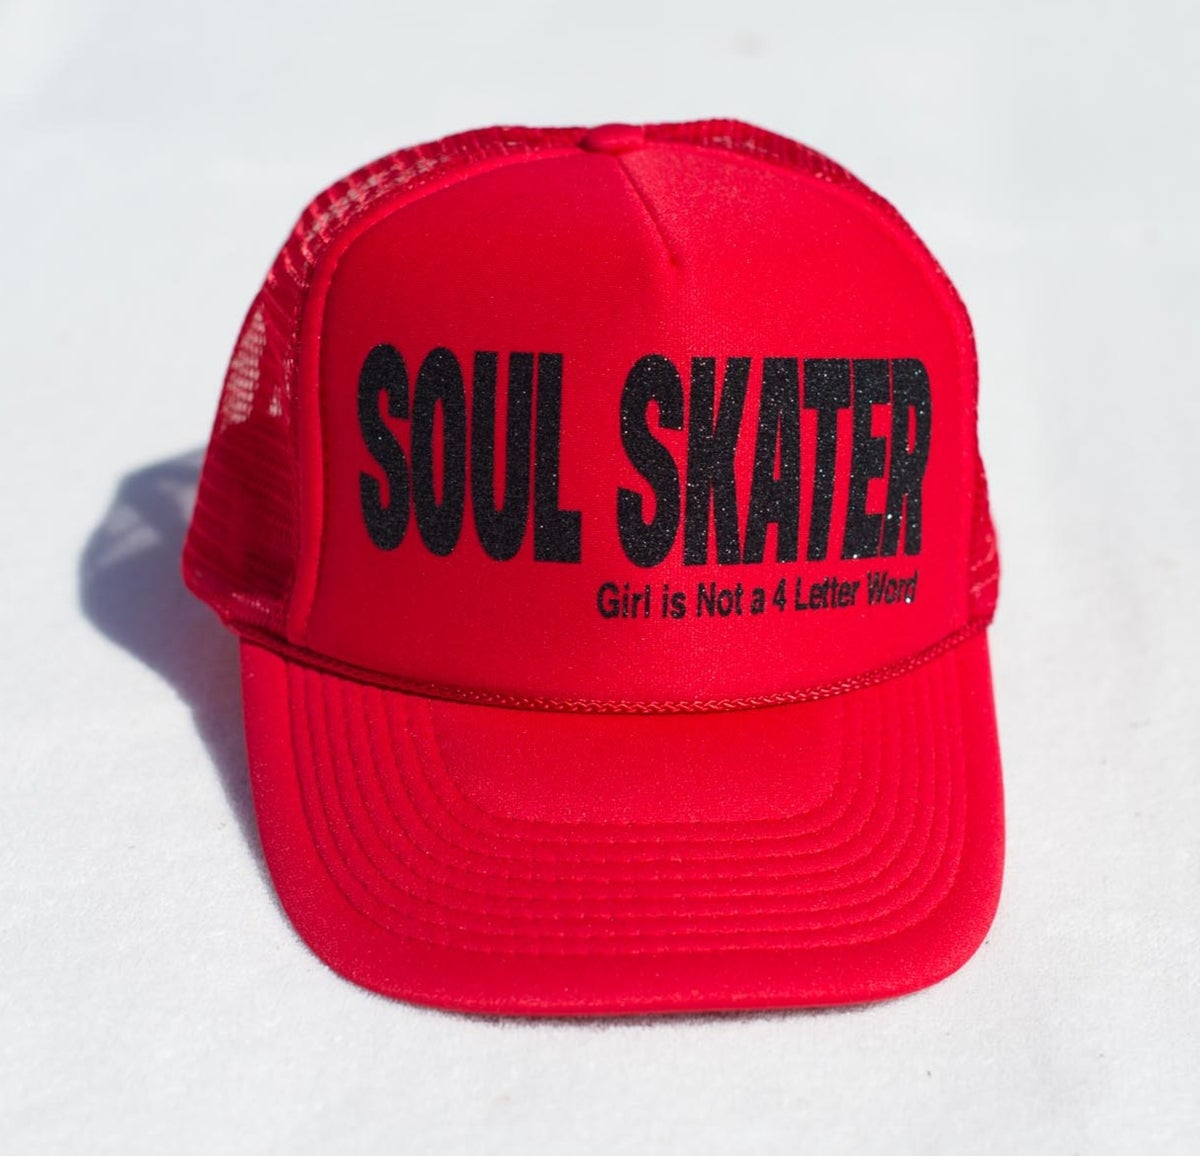 dfdbc70c1c4 Soul Skater Trucker Hat!   Girl is NOT a 4 Letter Word